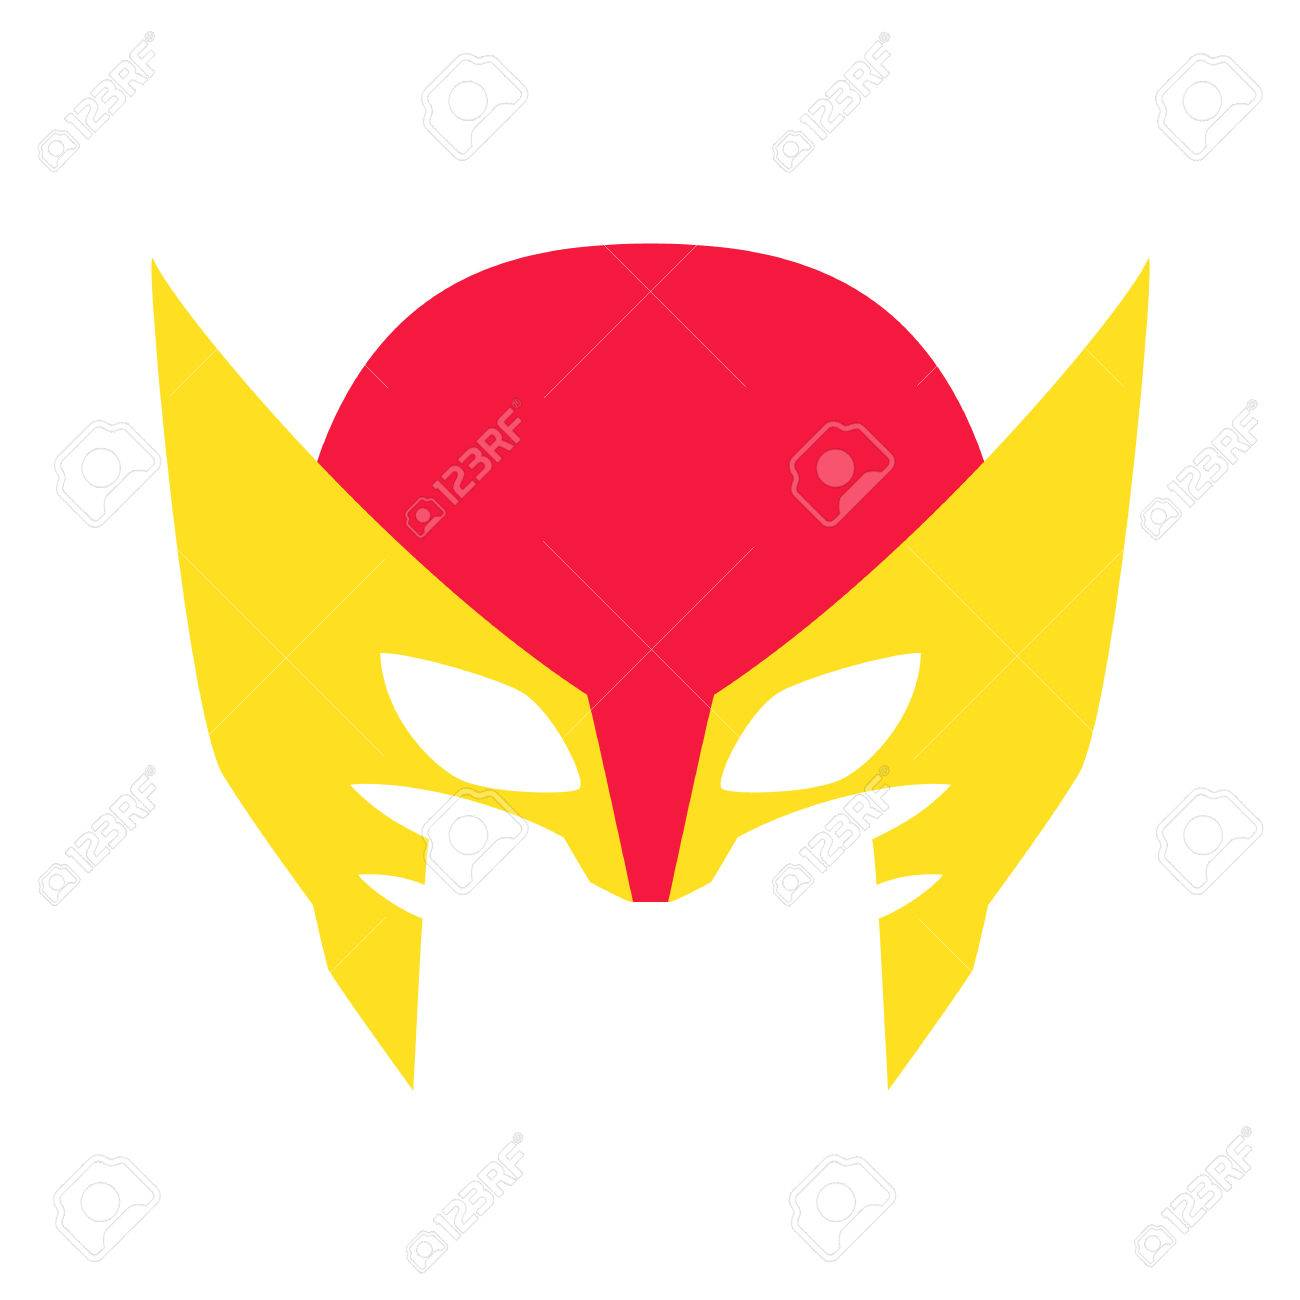 Super hero red mack superhero mask for face character in flat super hero red mack superhero mask for face character in flat style masks of biocorpaavc Image collections